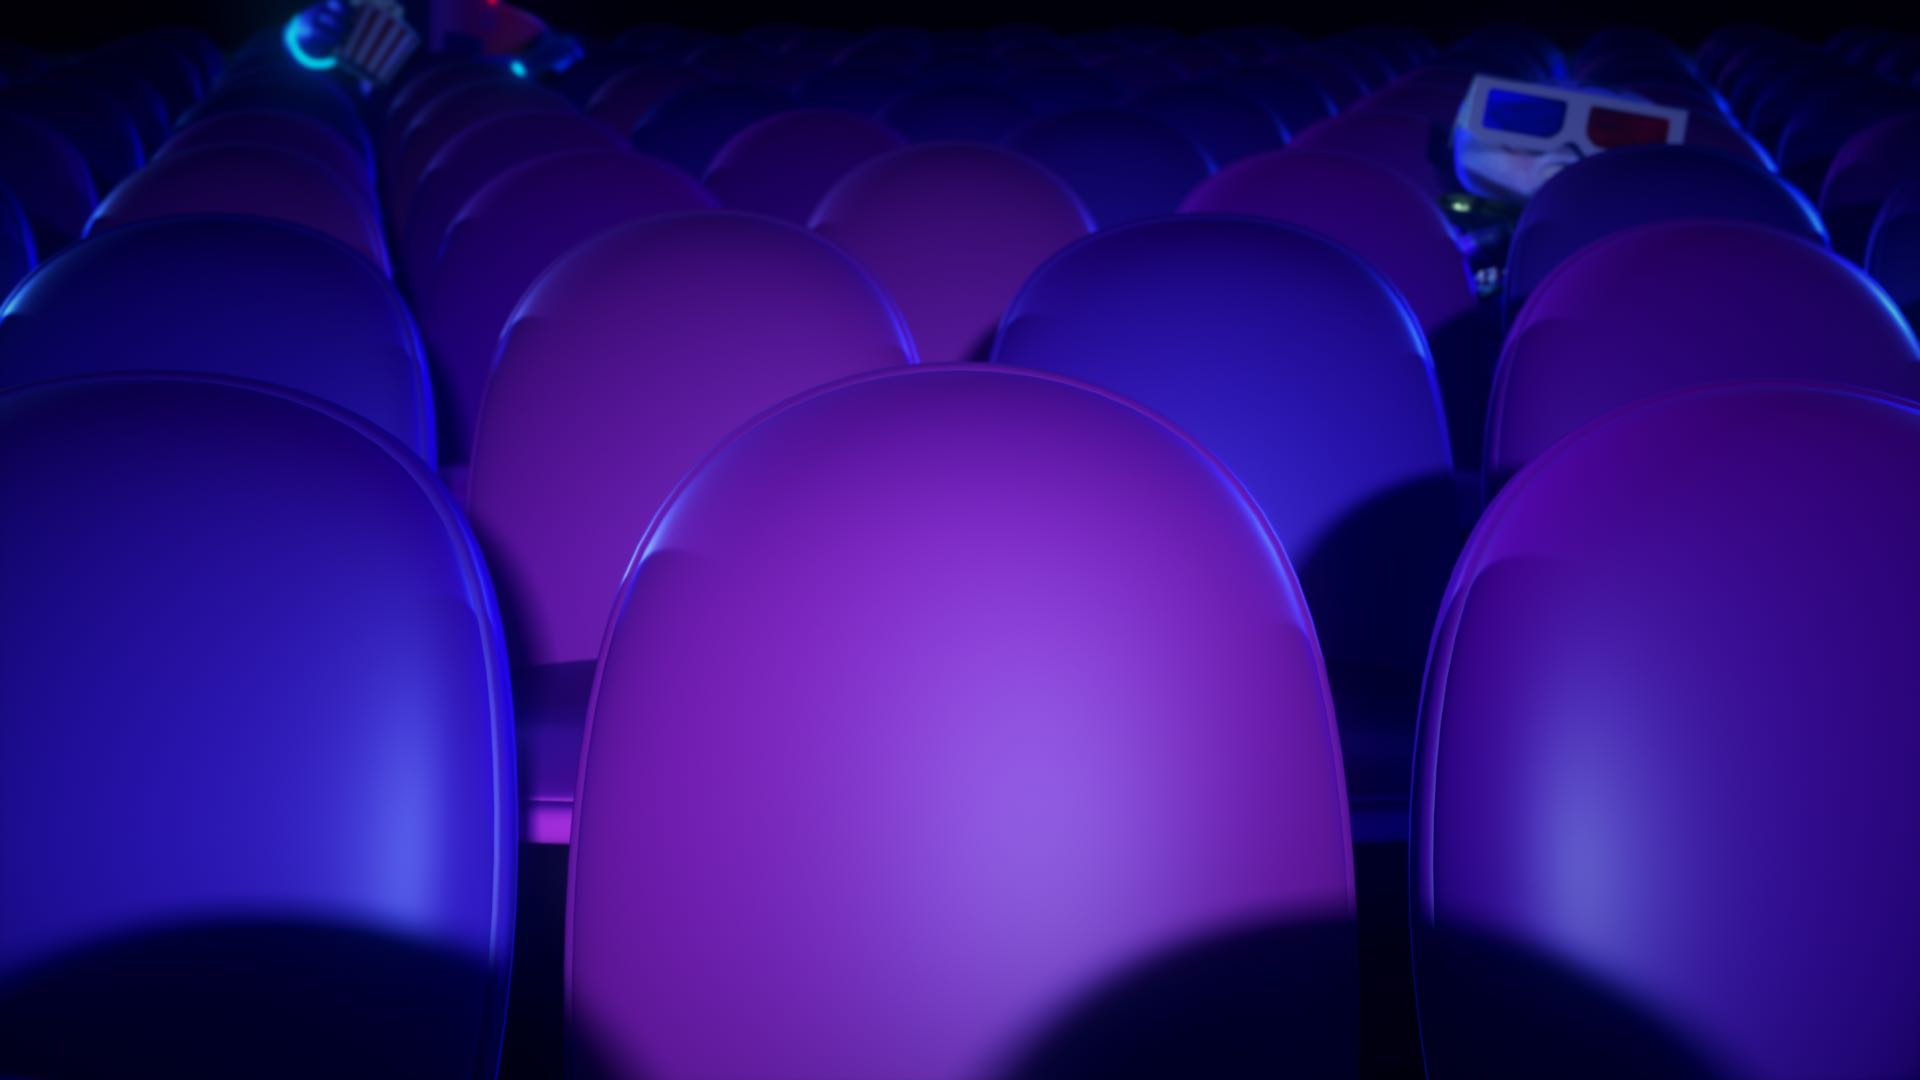 Theatre Seats Zoom Background